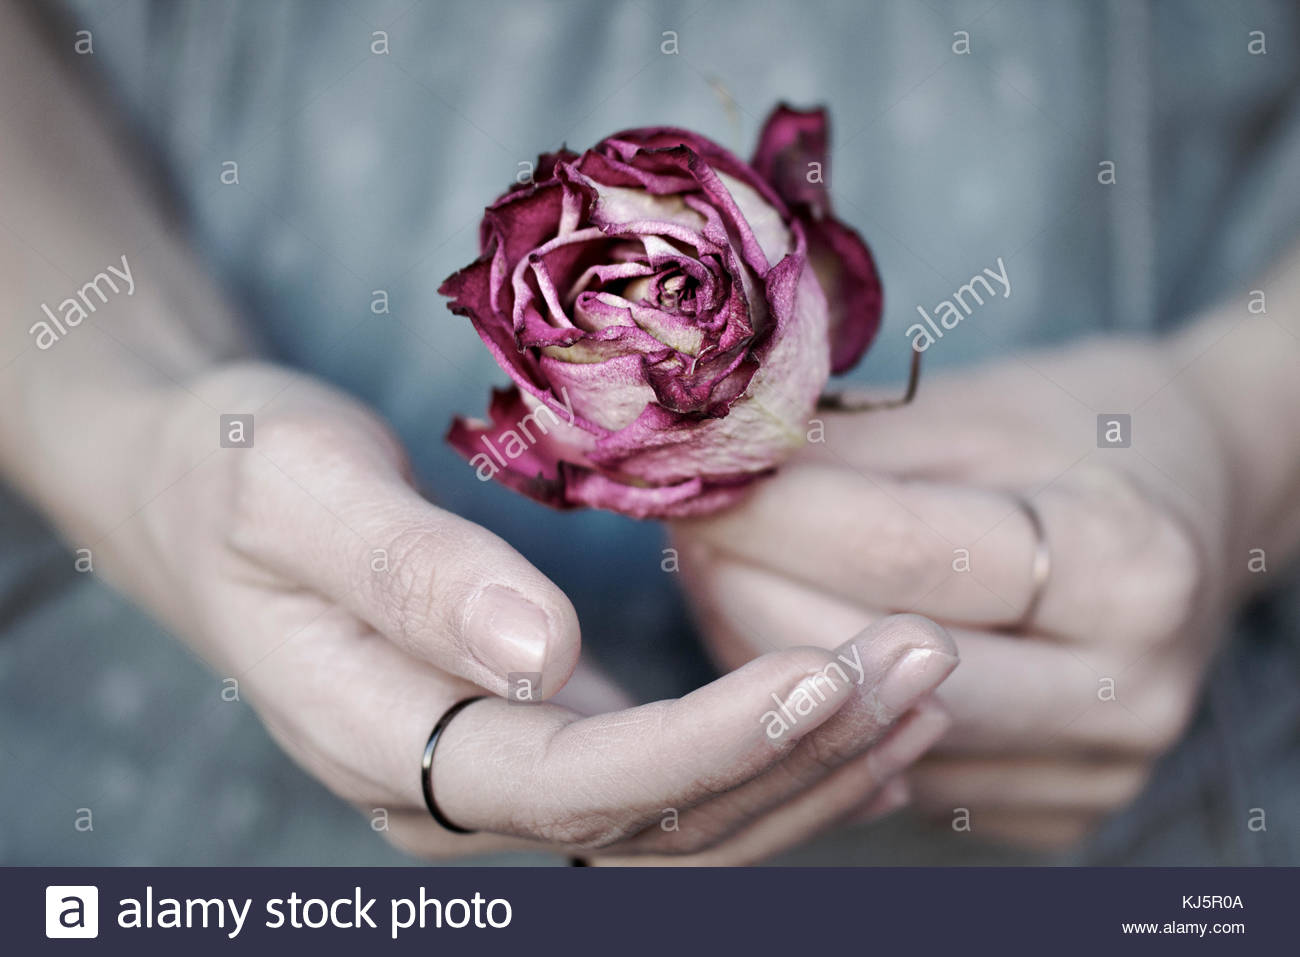 Hands holing a rose - Stock Image